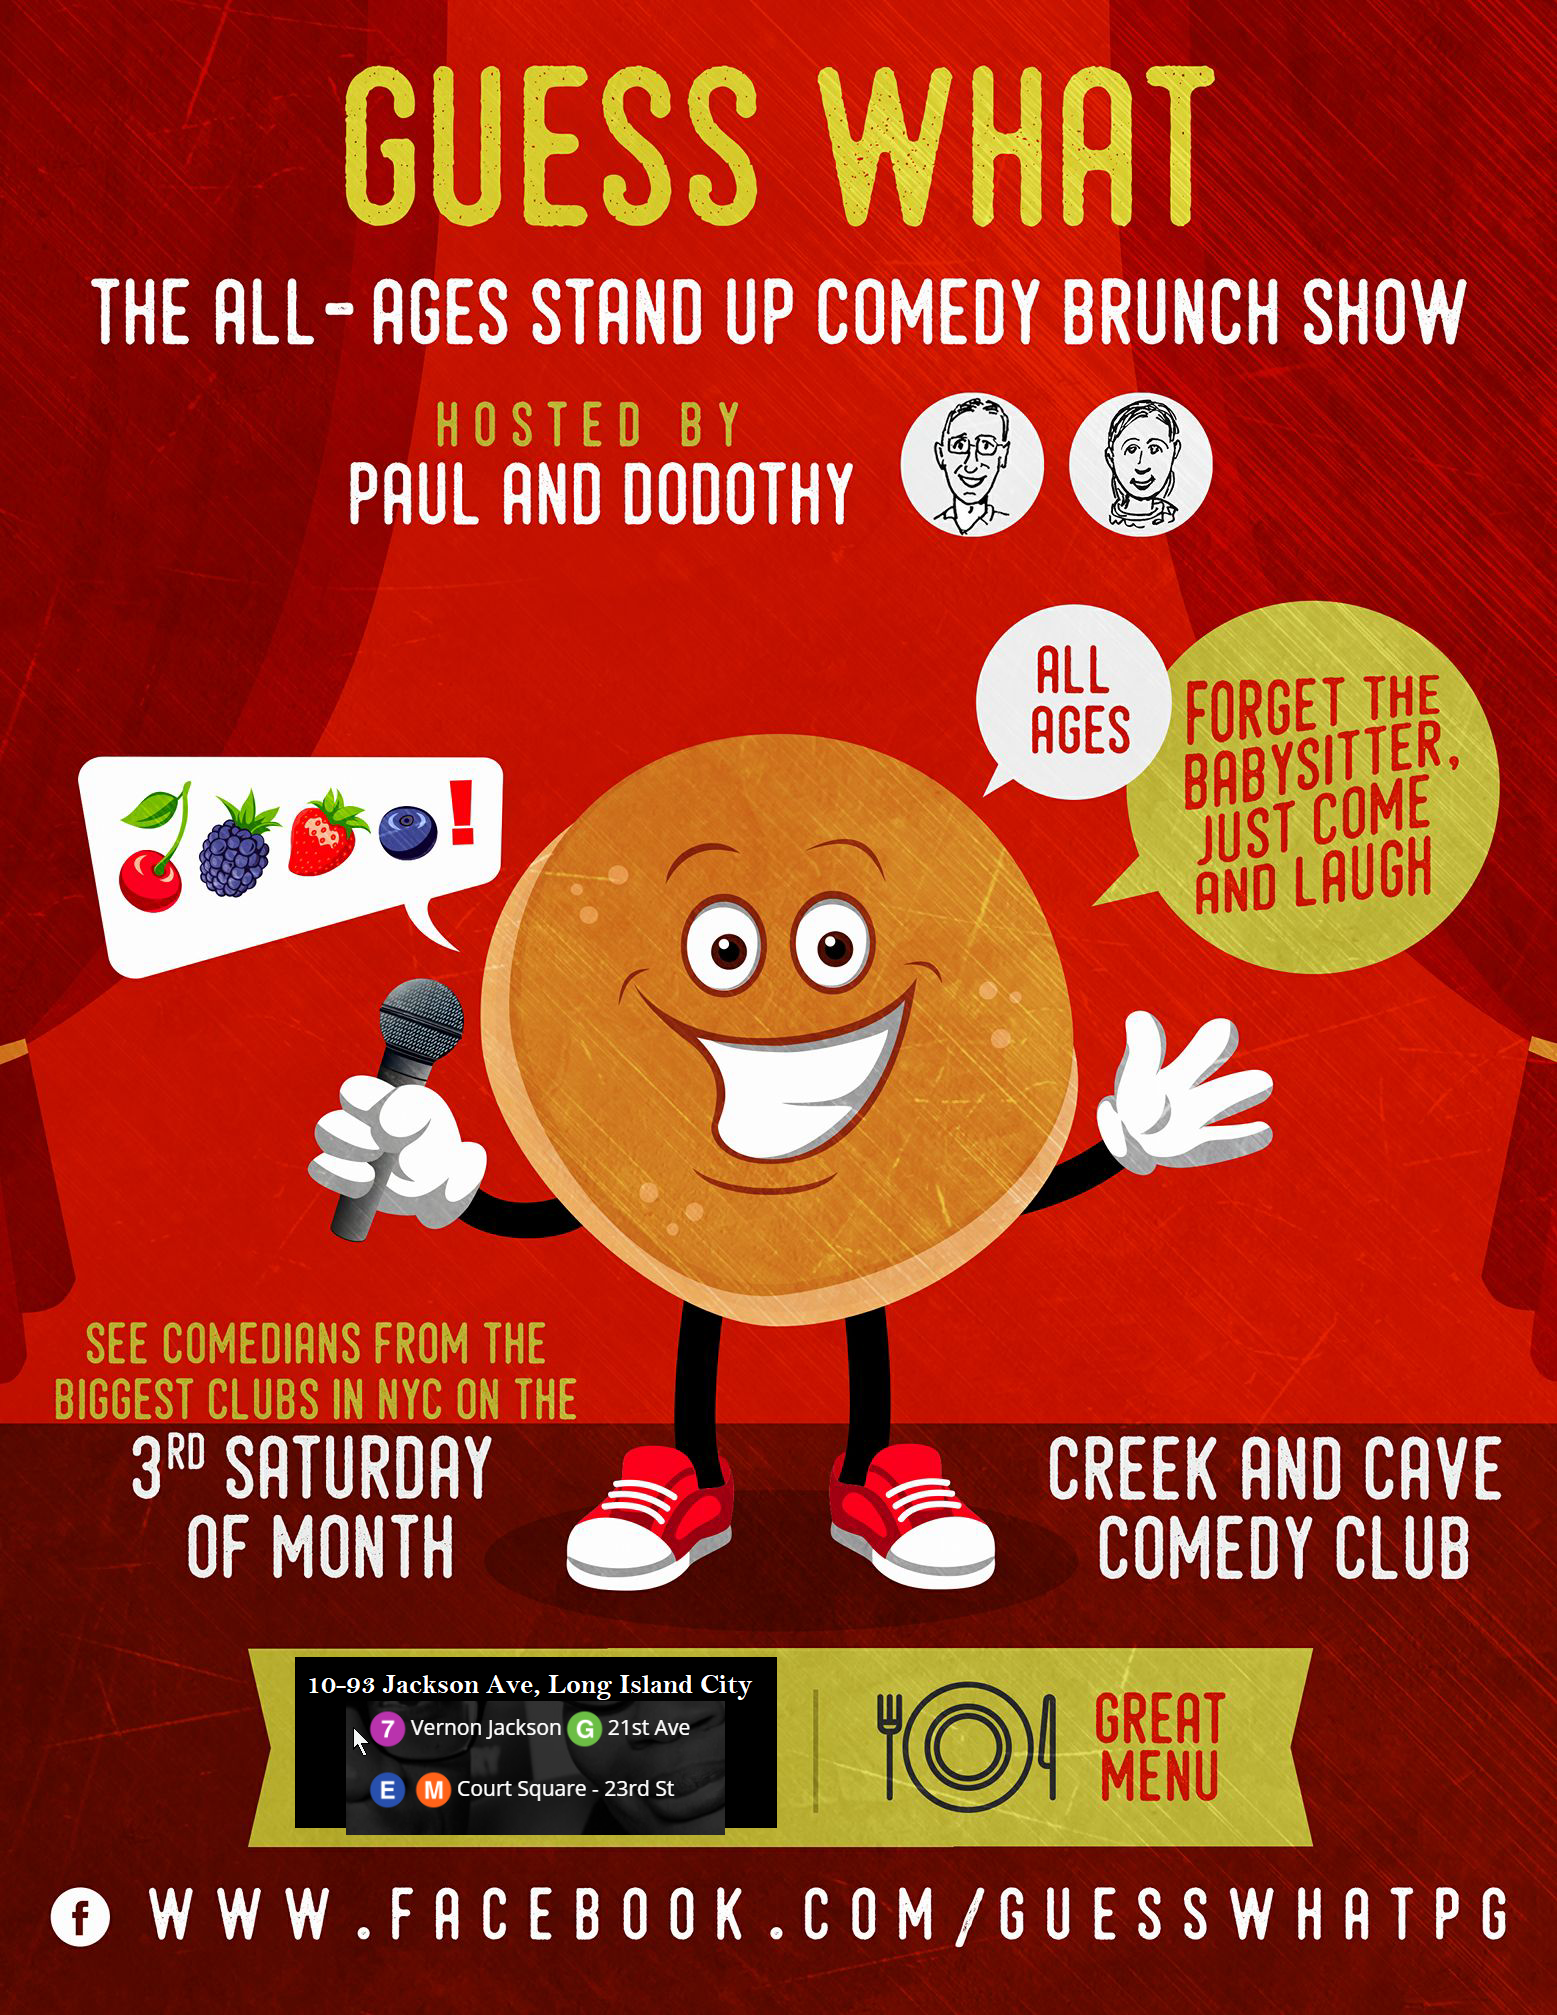 Guess What Family Friendly Comedy Show at Creek and Cave Comedy Club